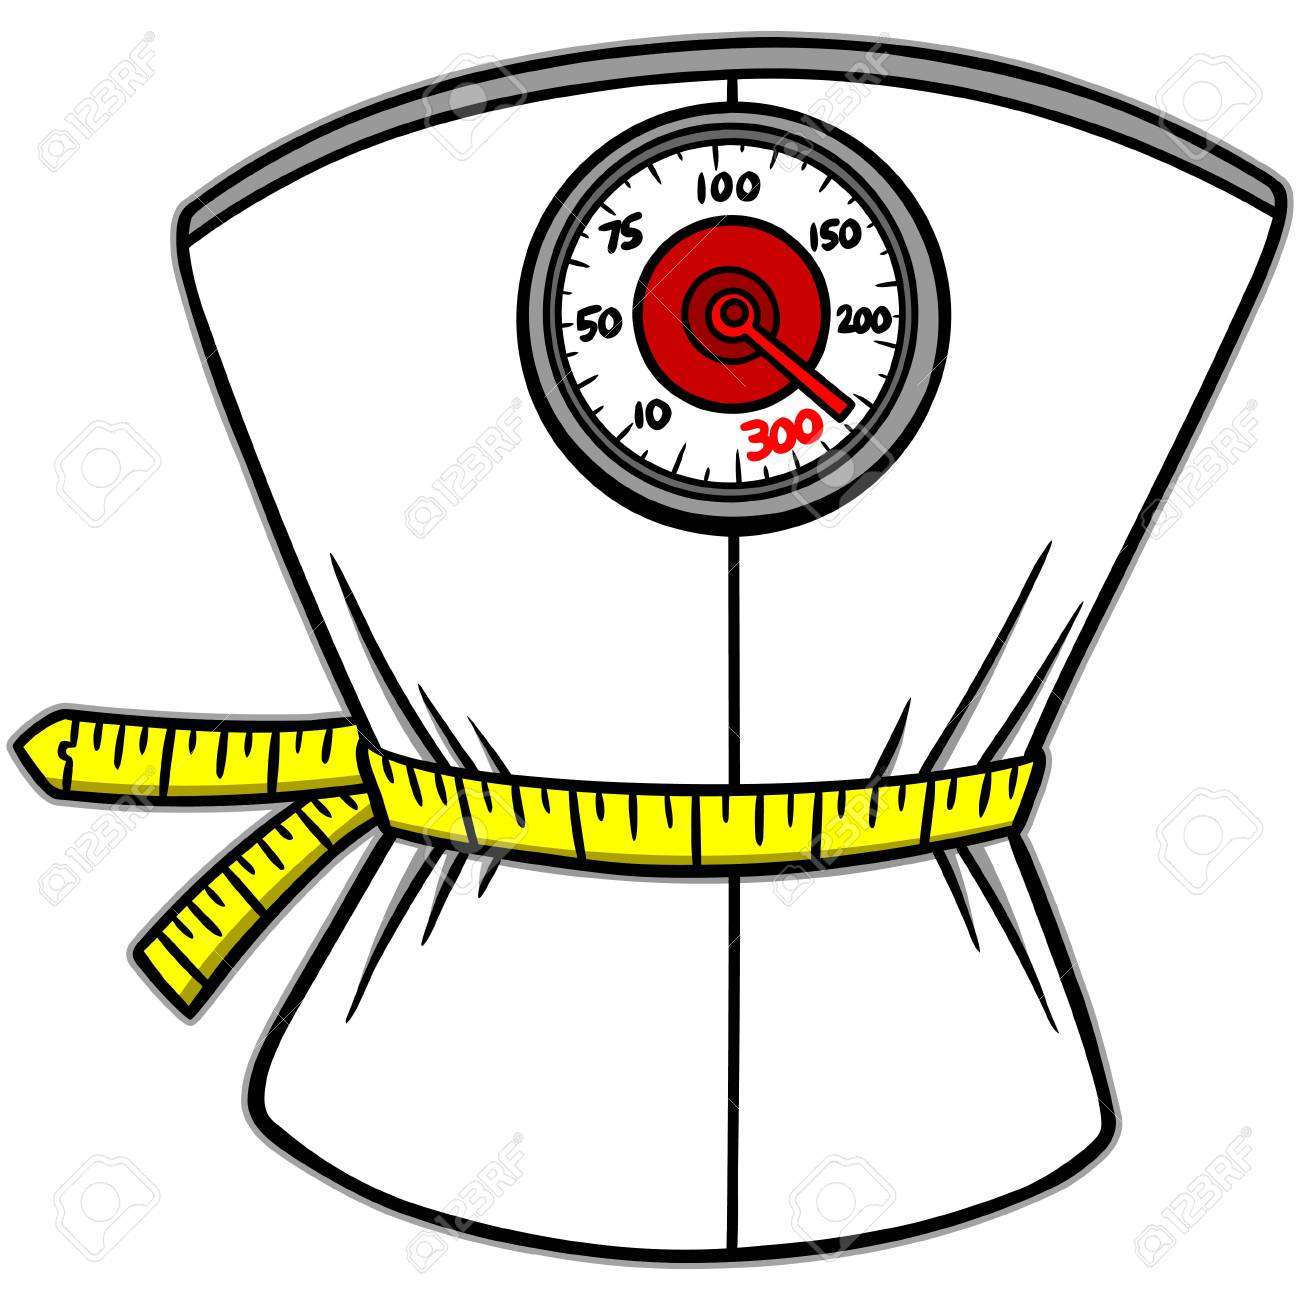 Image result for weight loss clipart